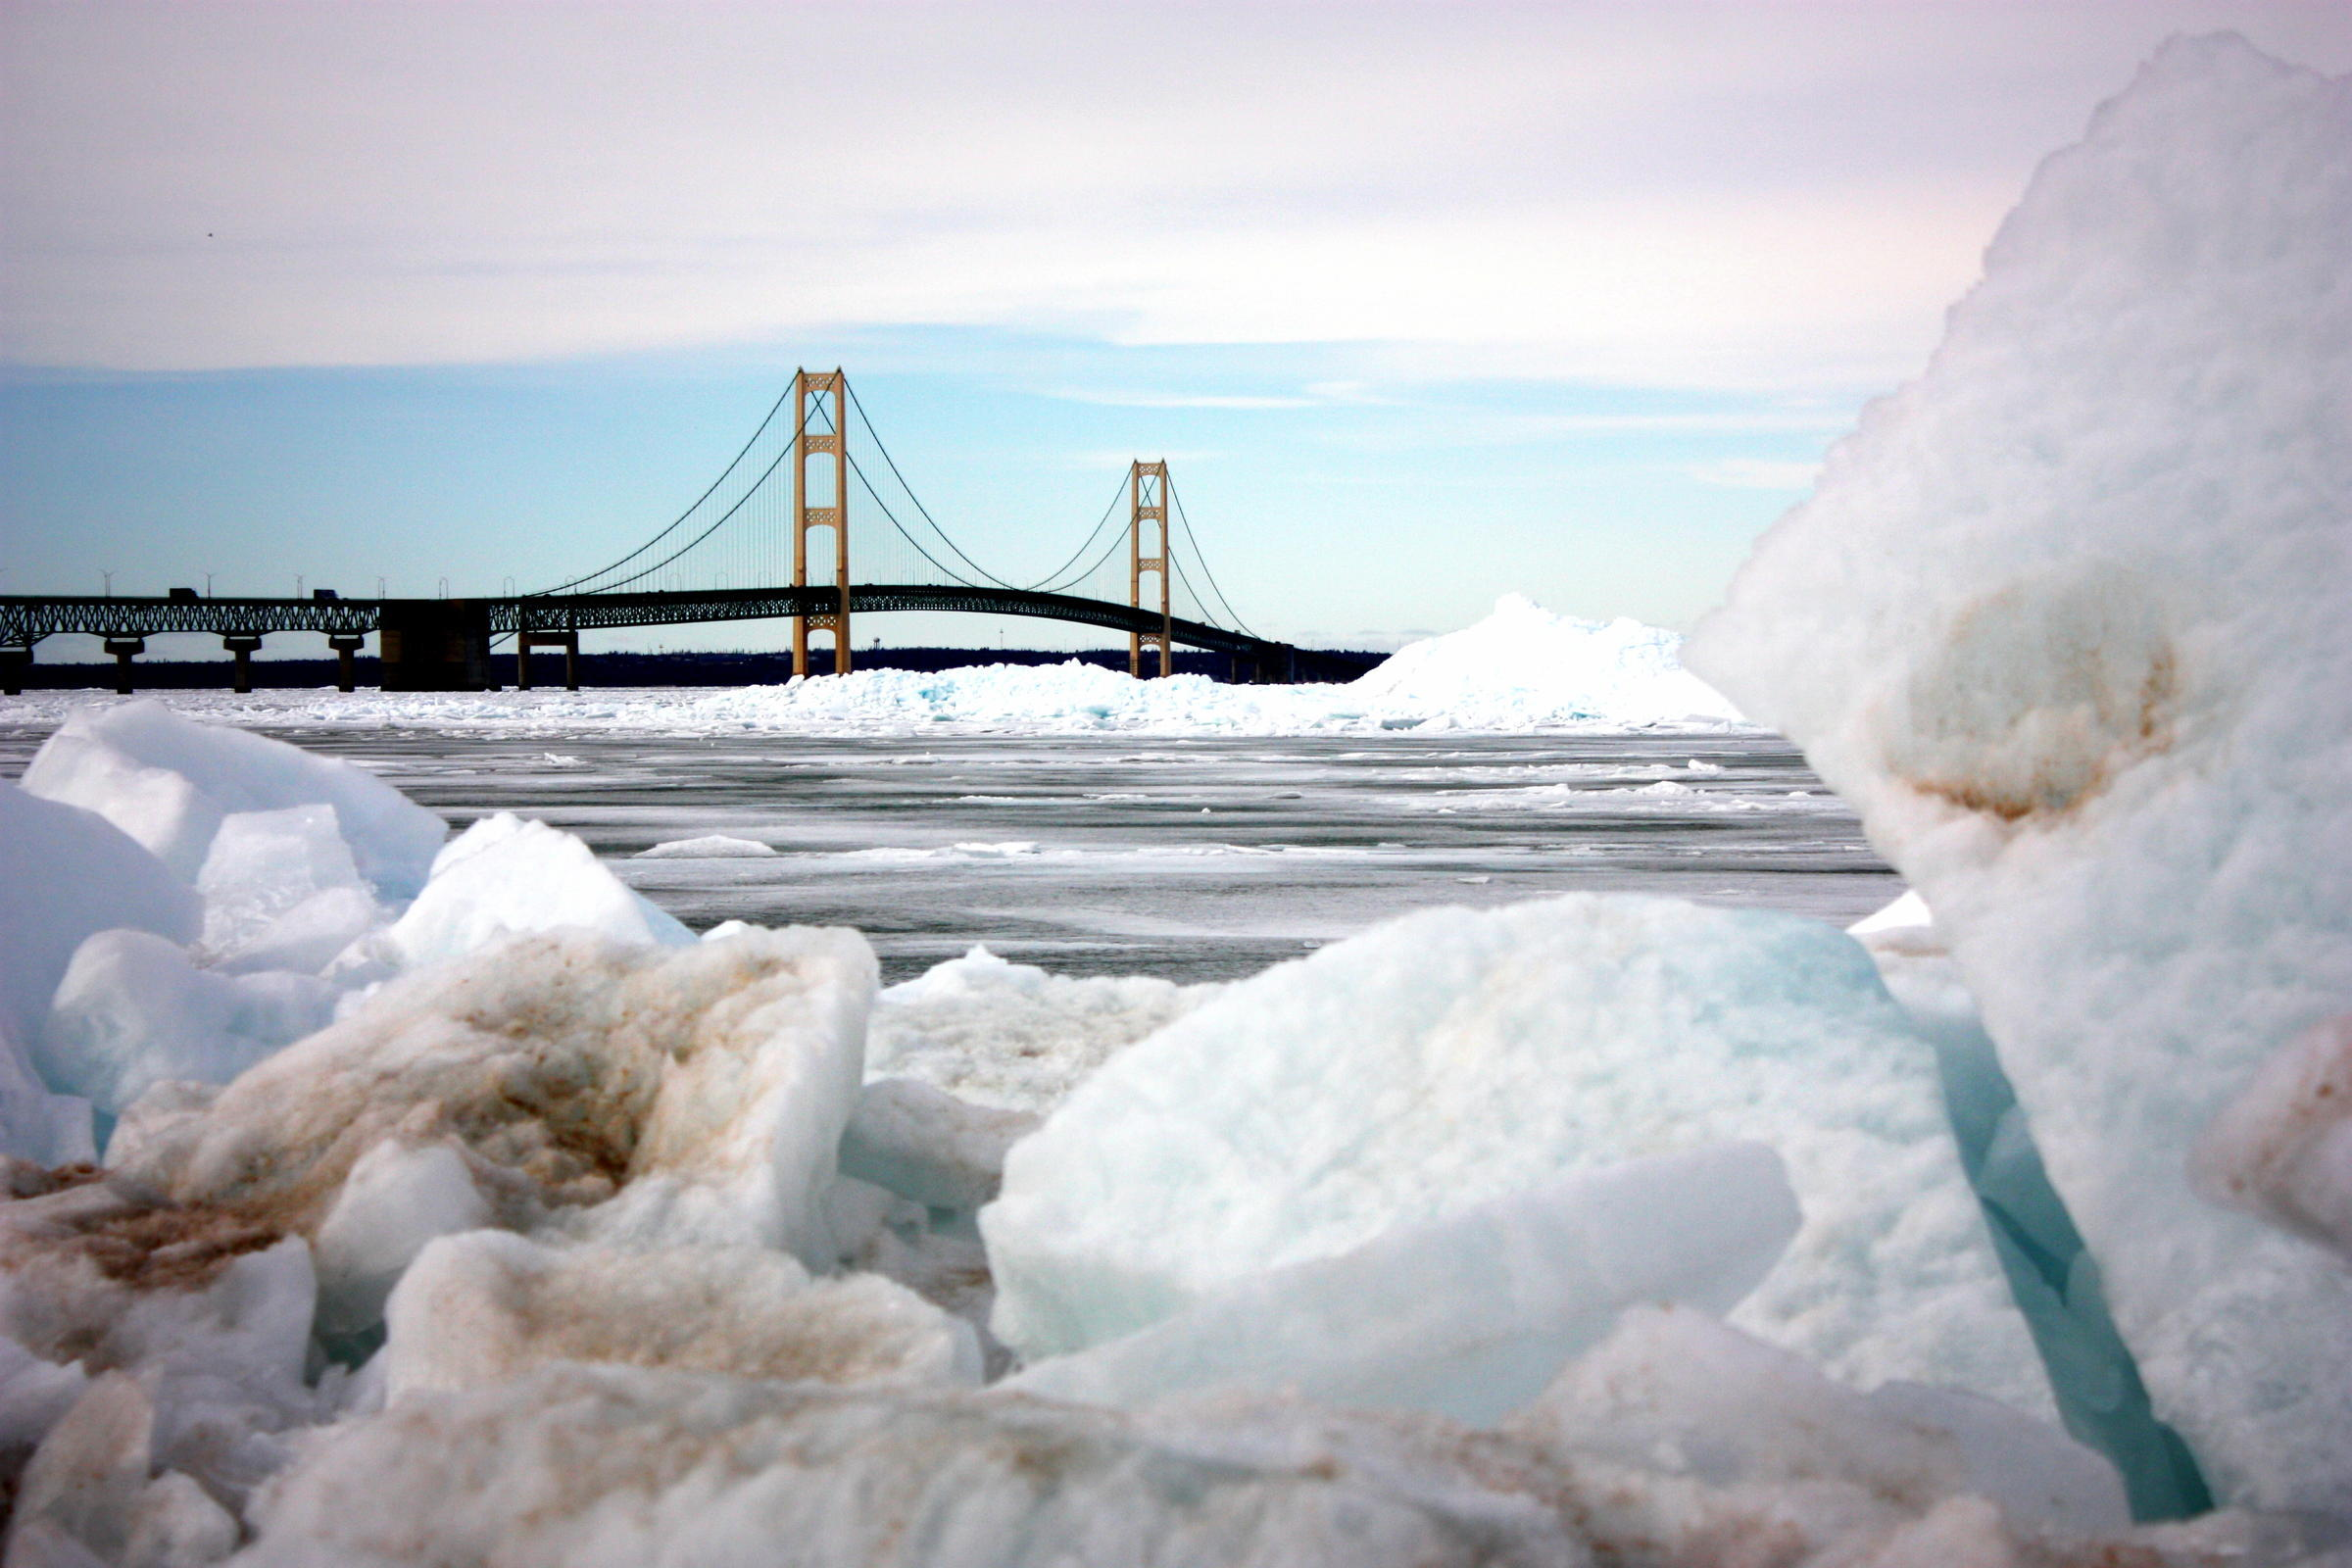 Line 5 oil pipeline in Straits of Mackinac dented by ship